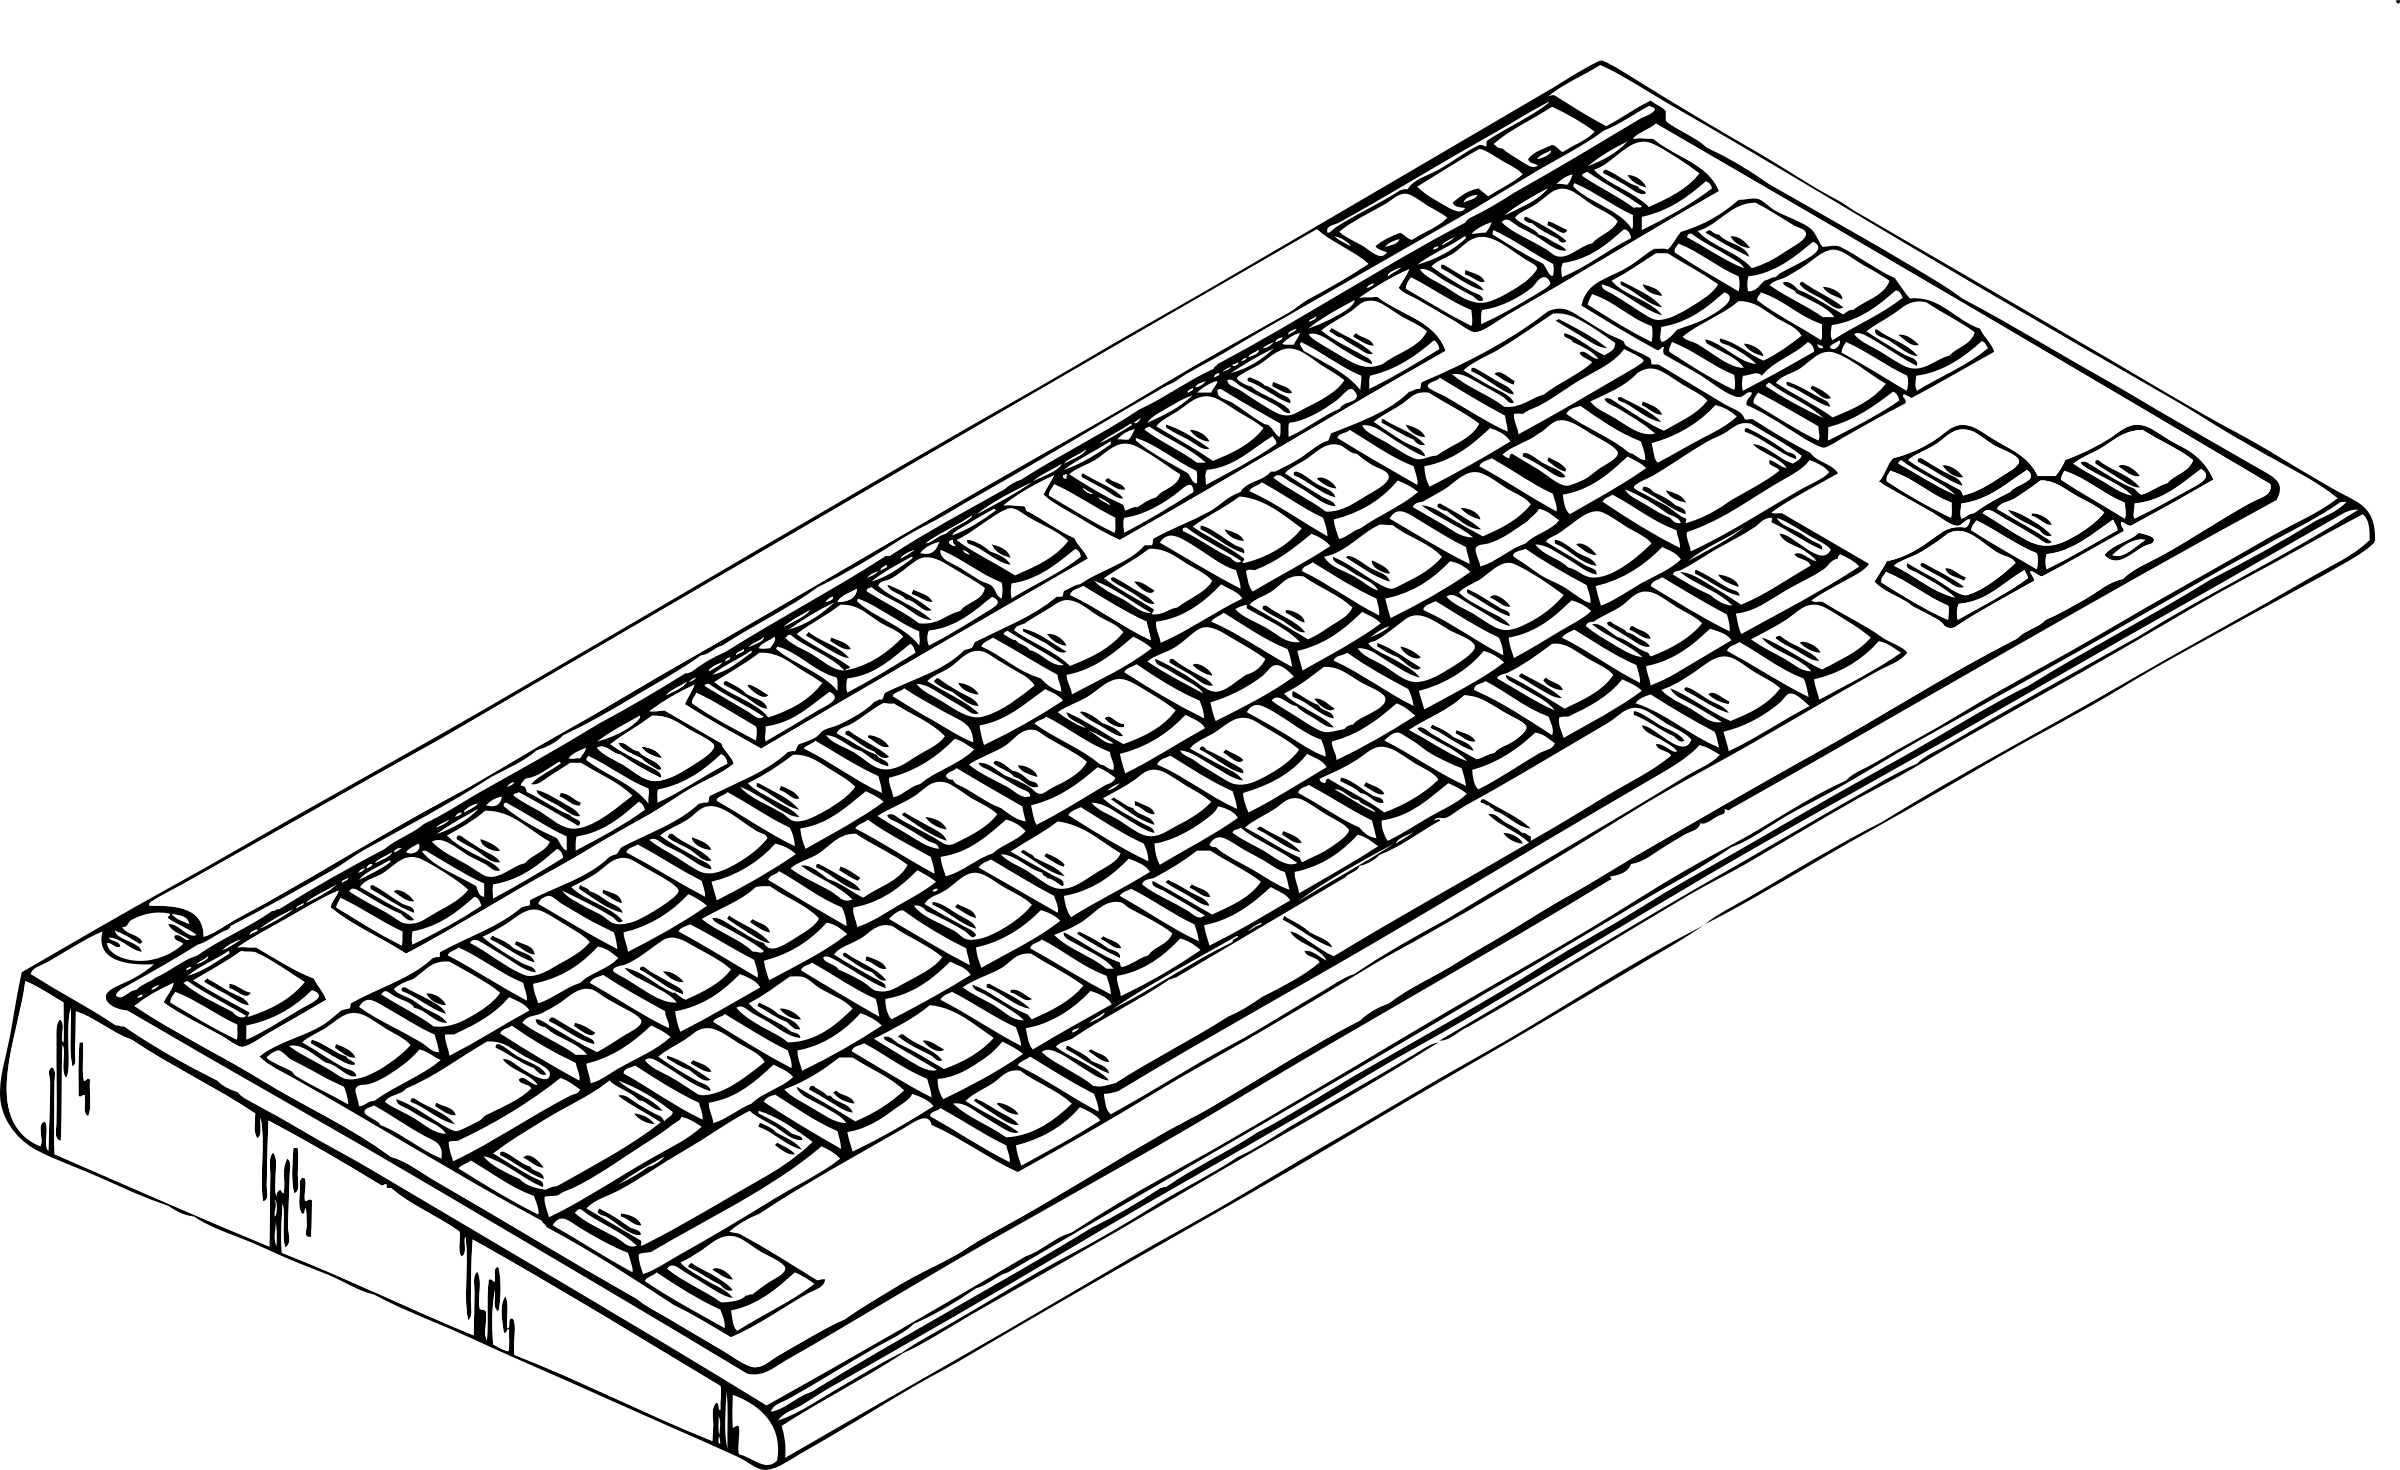 Clipart of computer keyboard picture black and white Clipart - computer keyboard 2 picture black and white